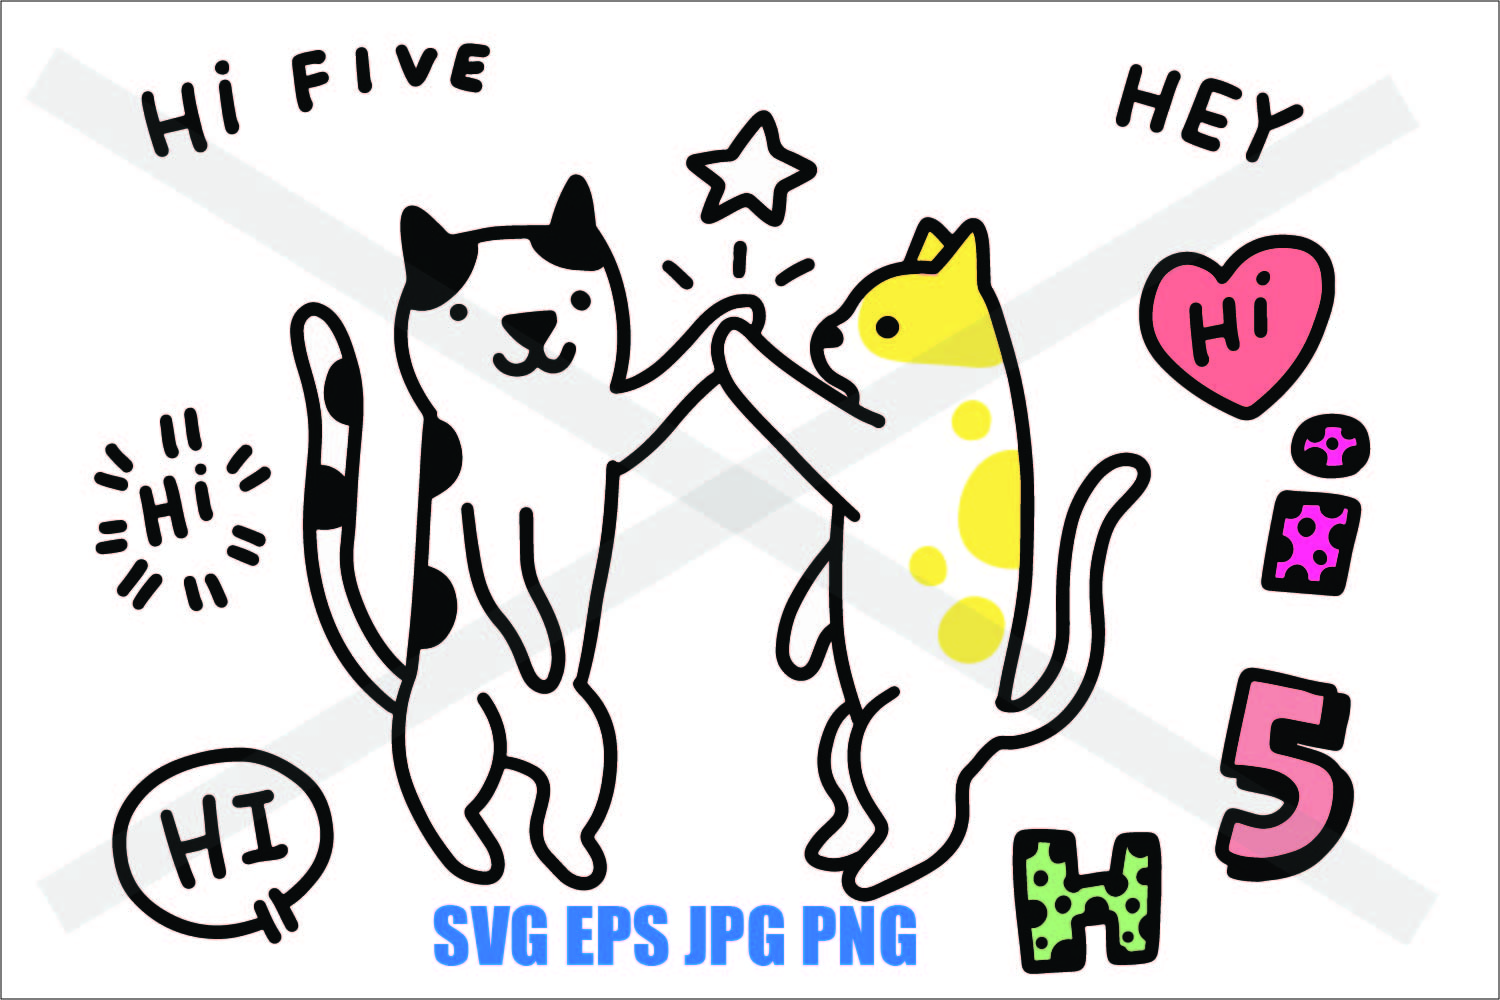 Two Cat High Five - SVG EPS JPG PNG example image 1